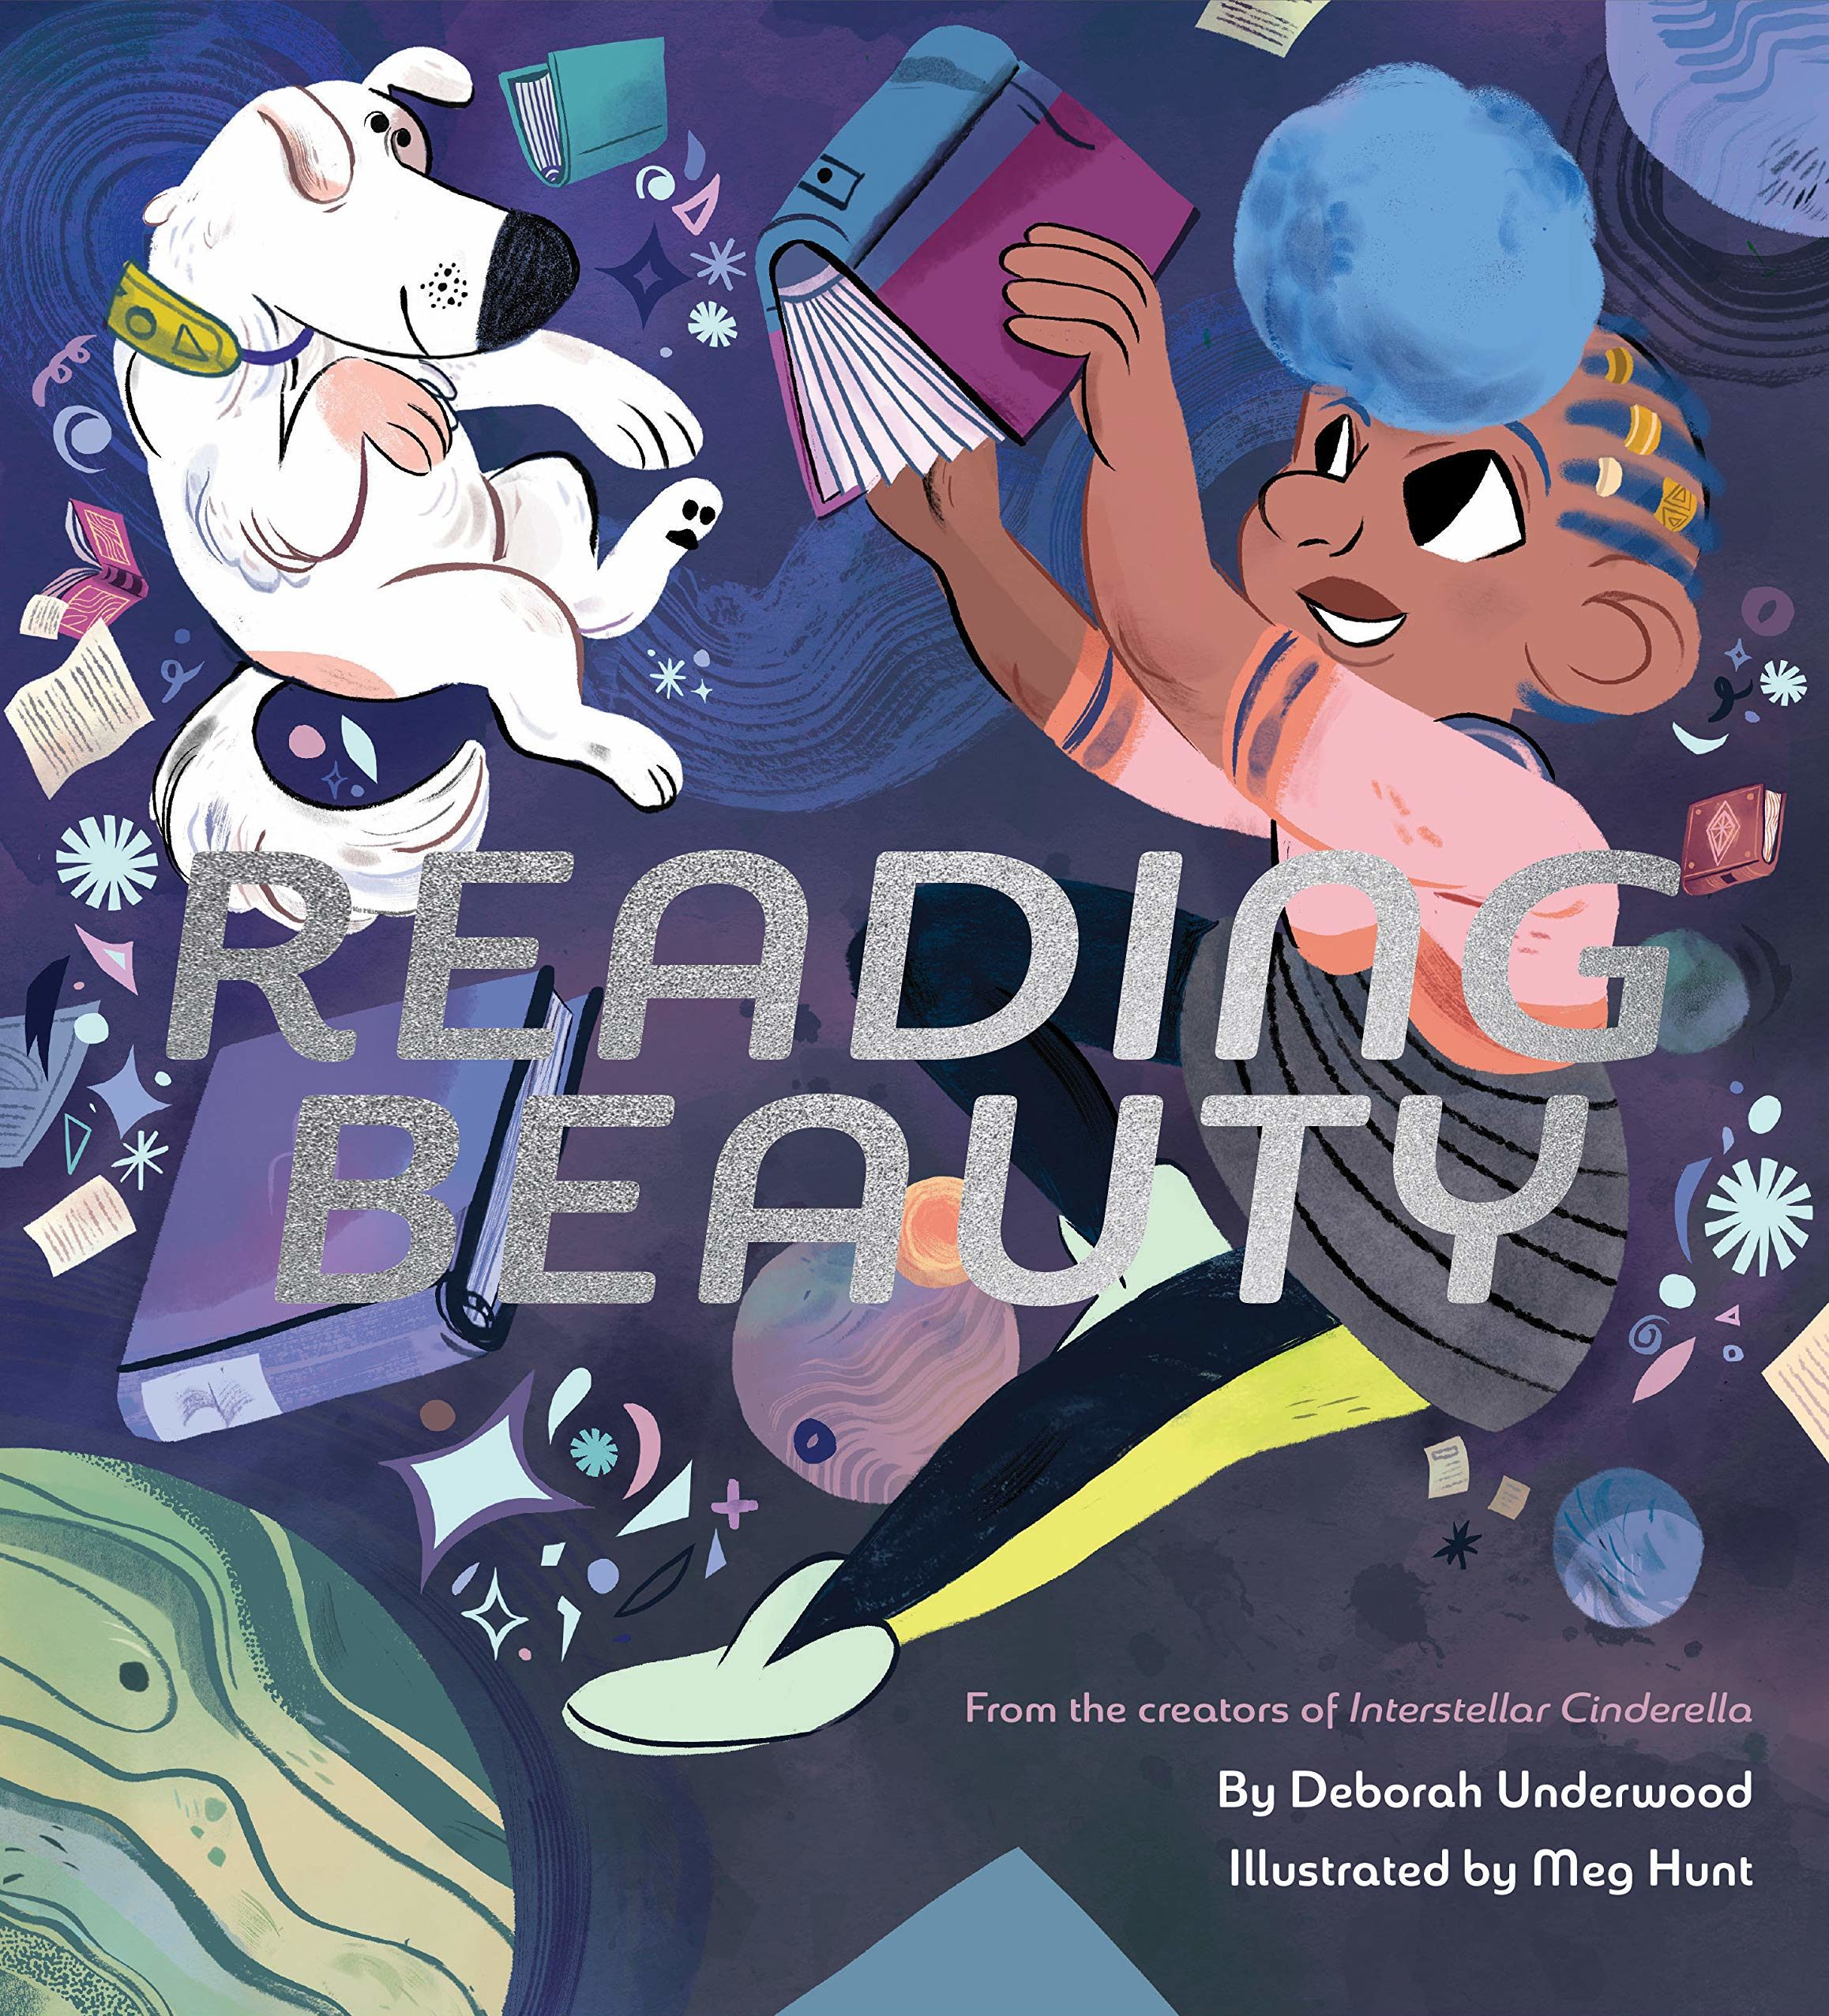 A picture book cover with title in silver foil, featuring an image of a Black girl and her dog in an outer-space setting among fantastical-looking books.